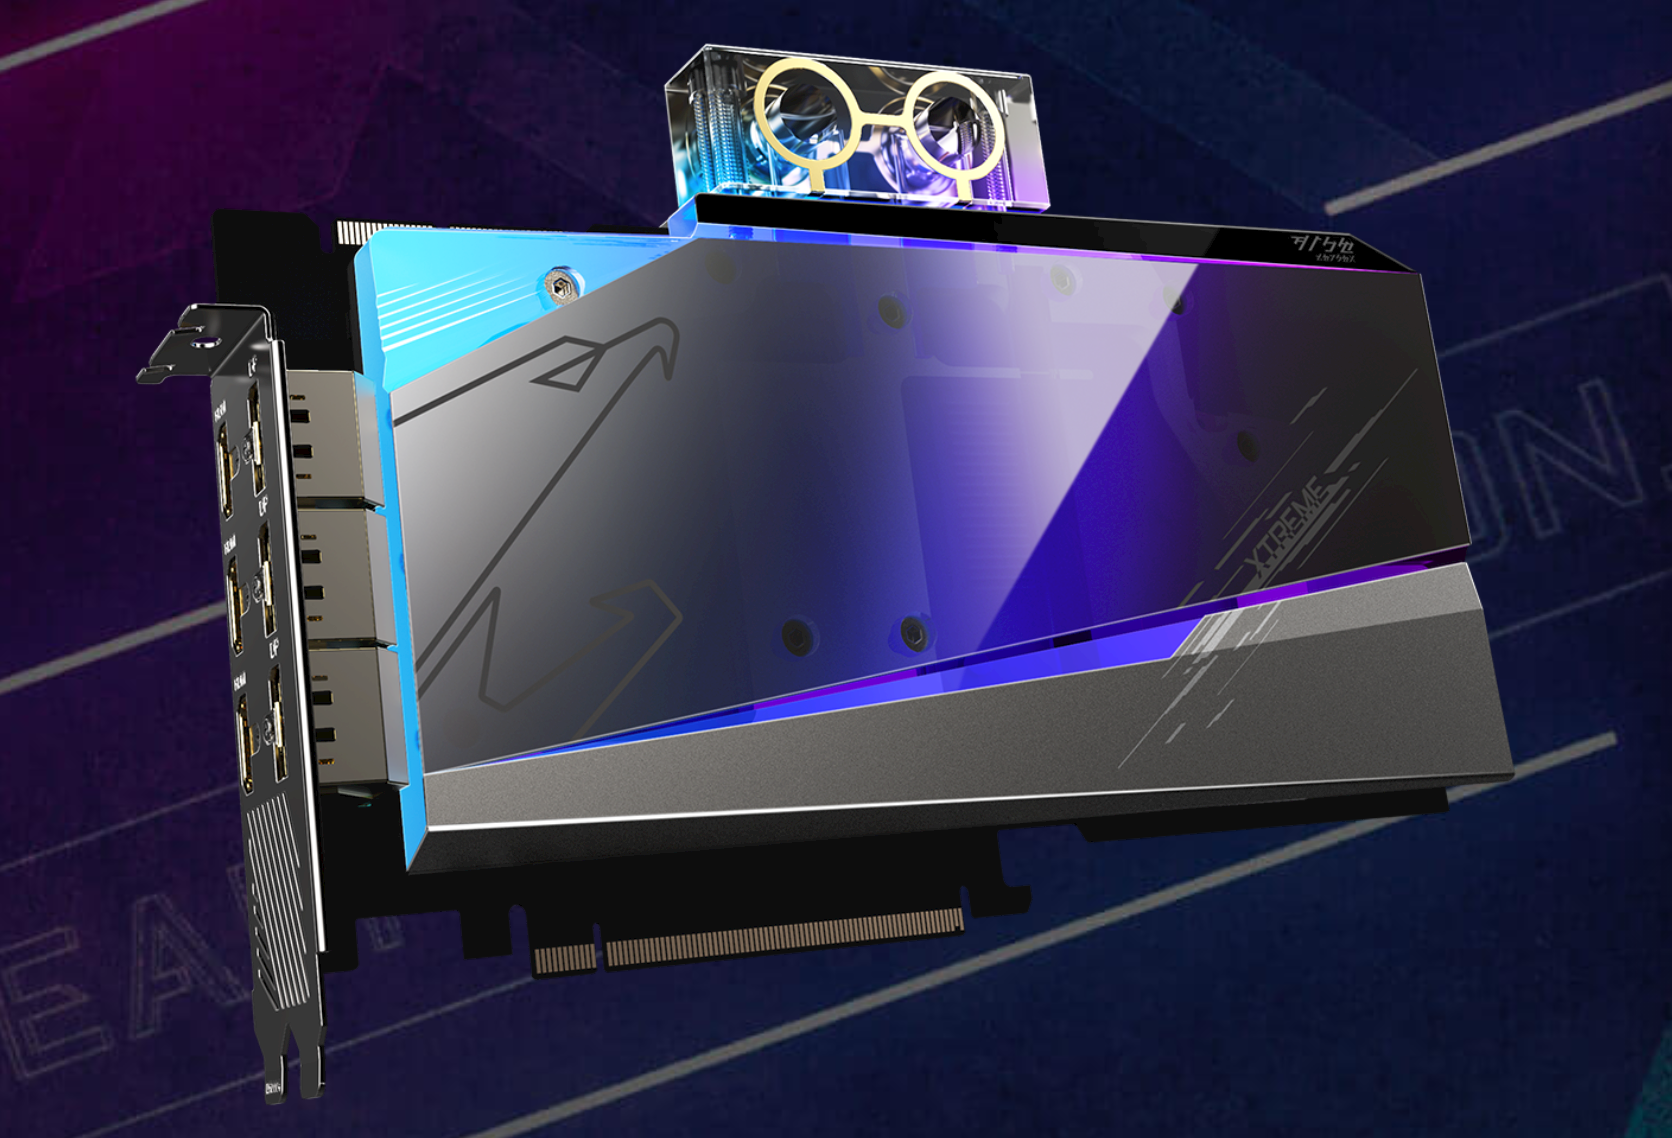 Gigabyte Radeon RX 6900 XT AORUS Xtreme Waterforce WB Graphics Card Pictured